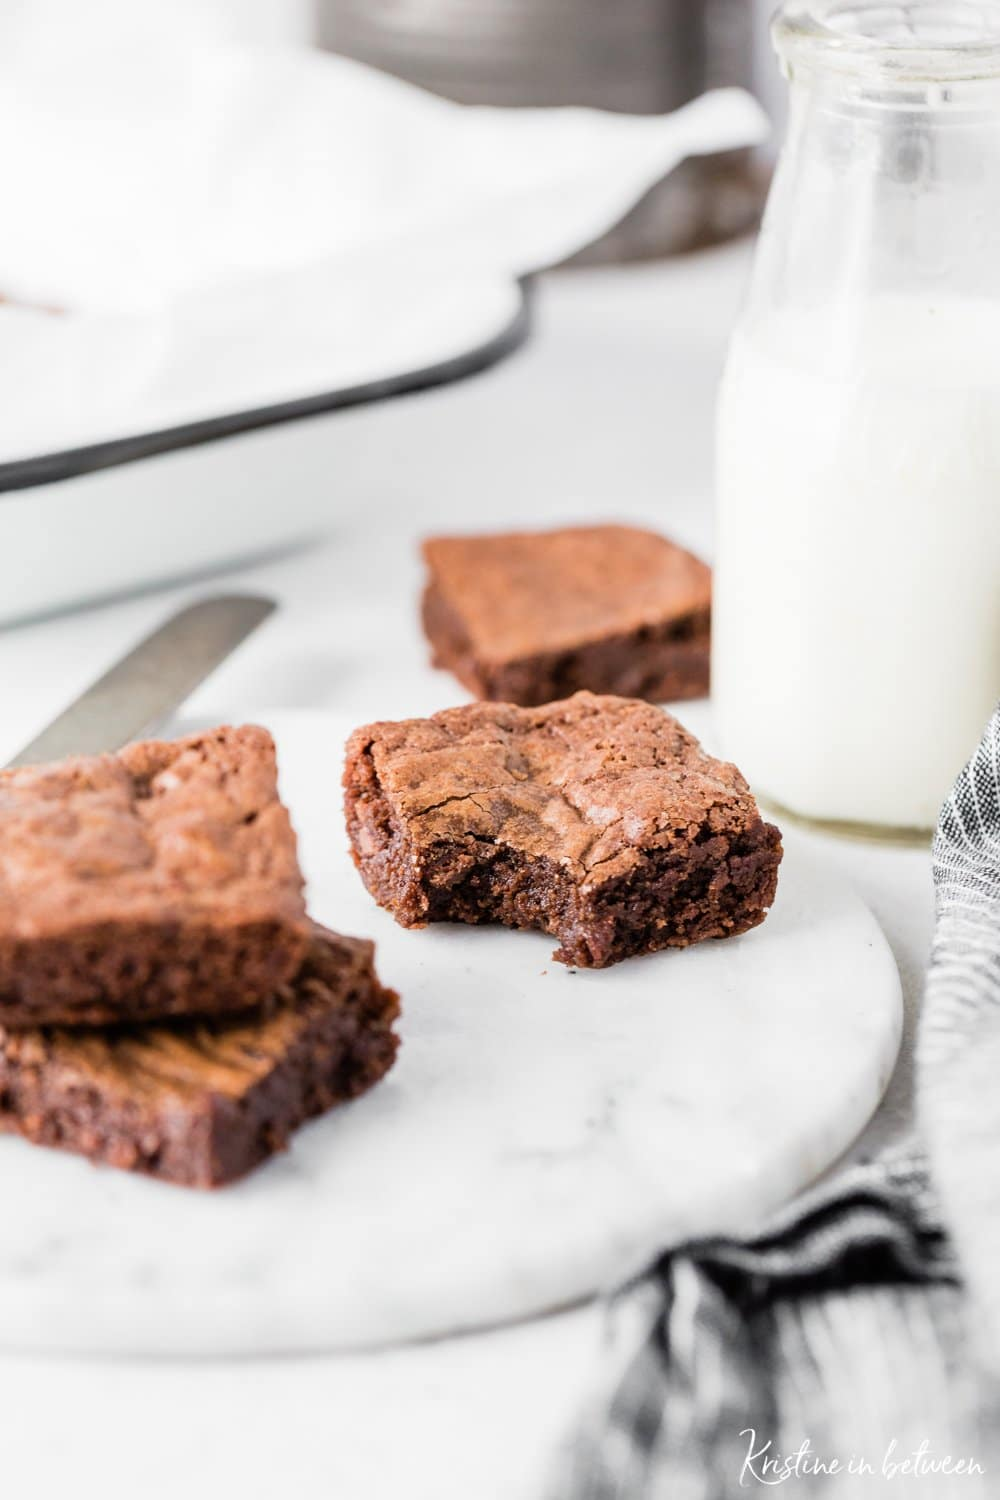 Super easy, thick and fudgy small-batch brownies for two!